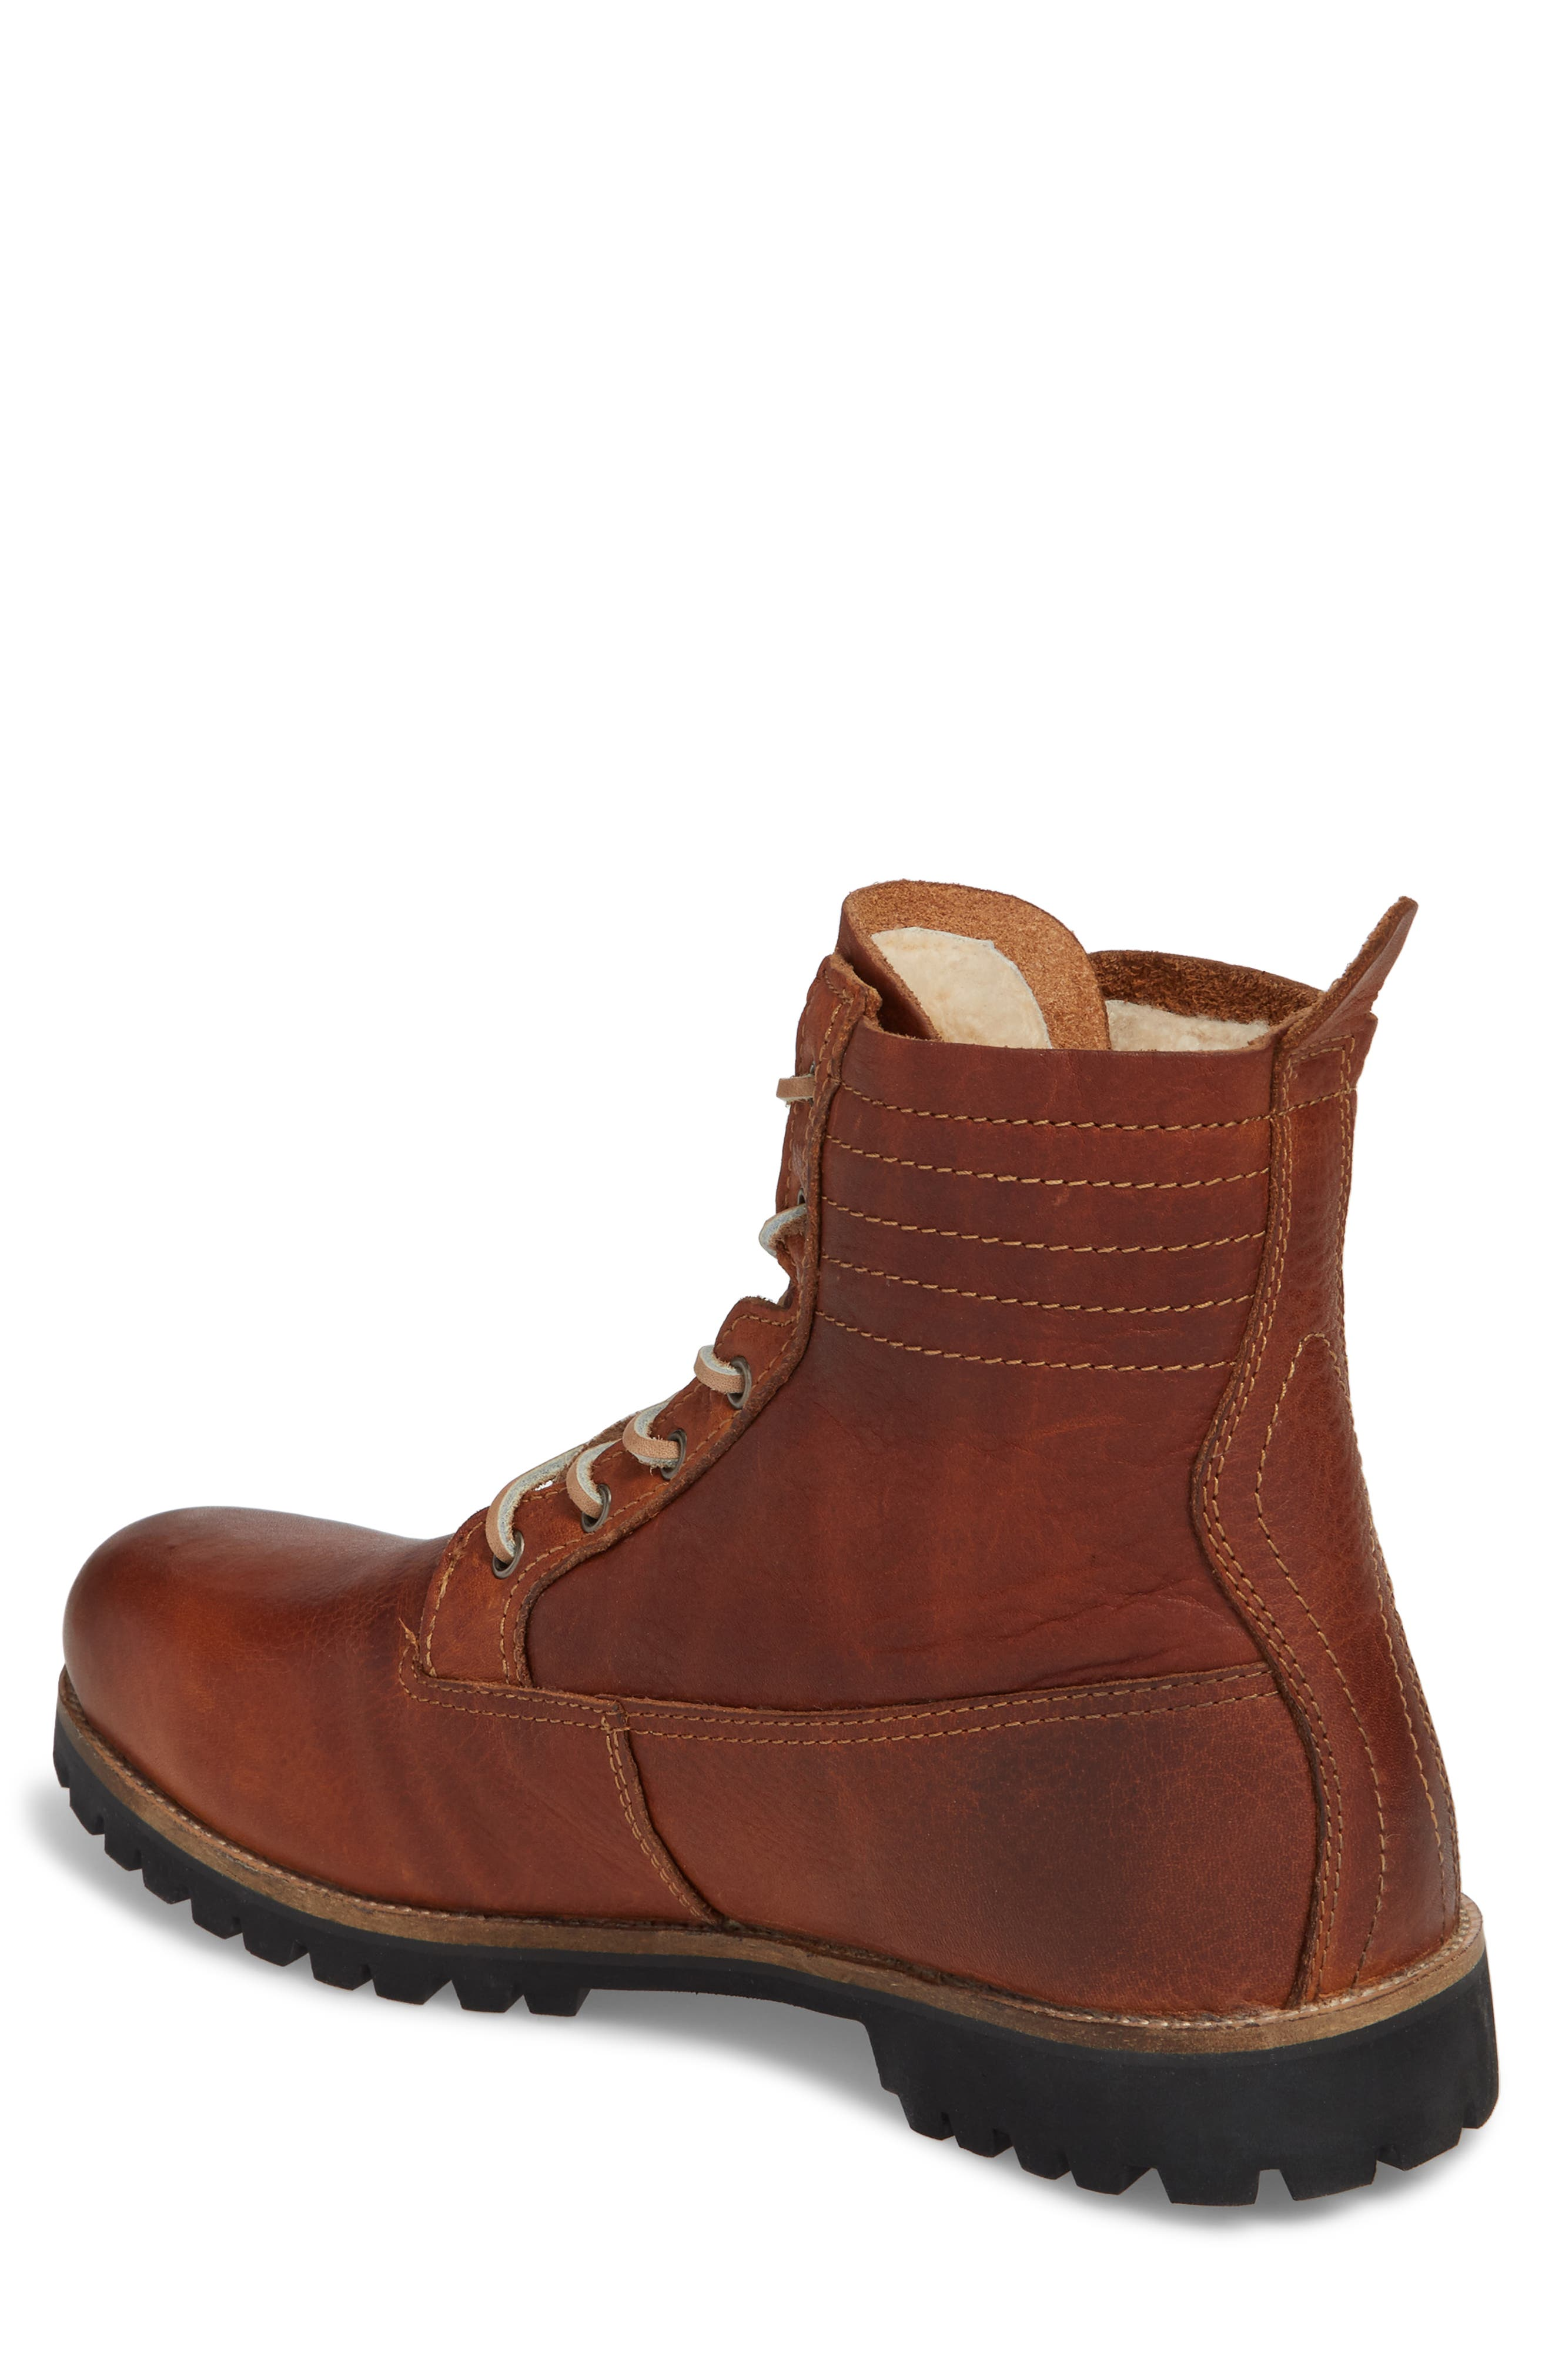 IM 12 Plain Toe Boot with Genuine Shearling,                             Alternate thumbnail 2, color,                             Cuoio Leather